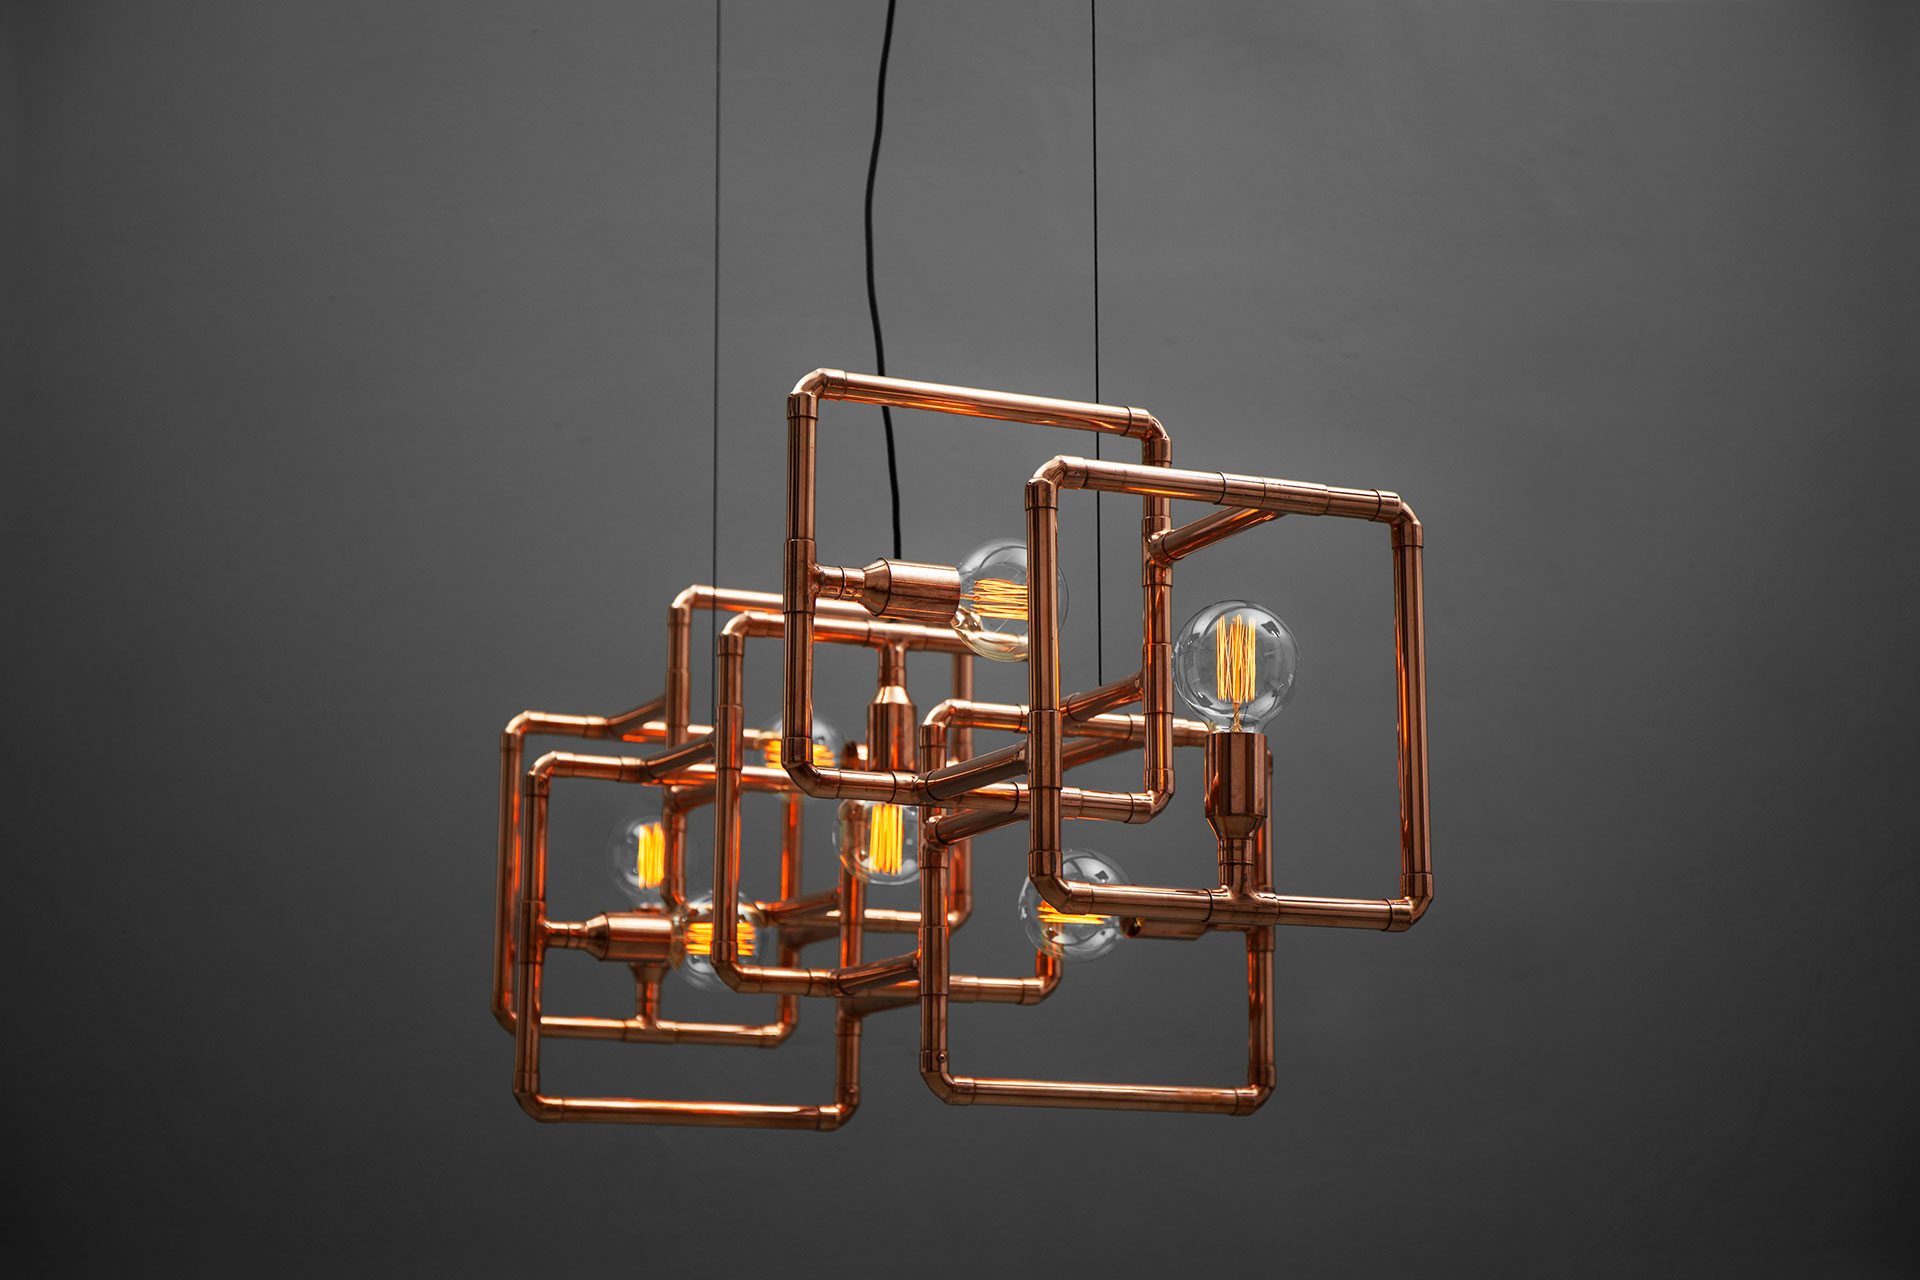 Custom lighting in copper inspired by brutalist architecture